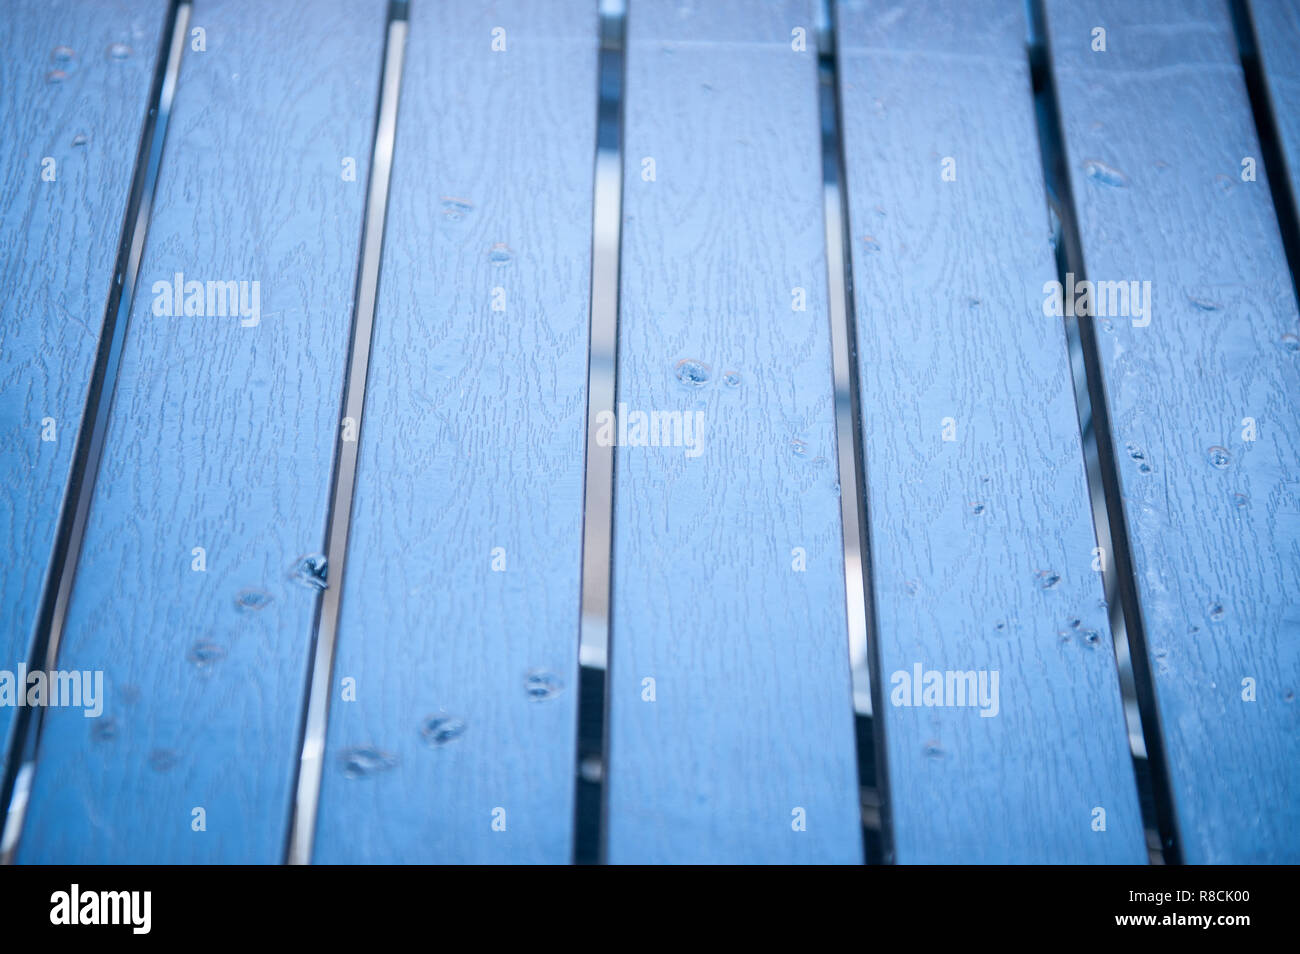 Blue Cafe table top with cigarette burns - Stock Image